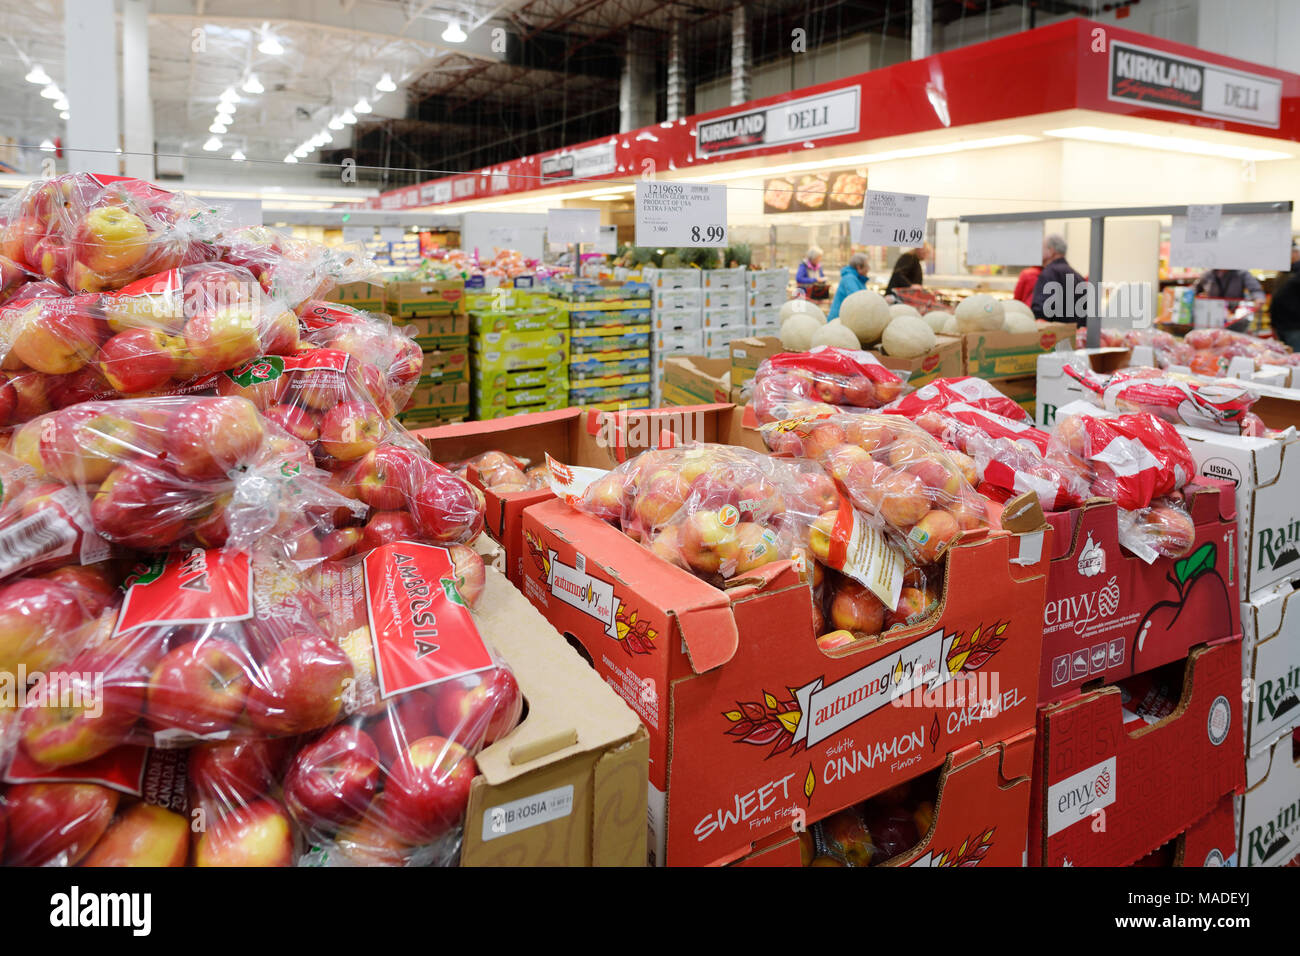 Apples and other fruits and groceries at Costco Wholesale membership